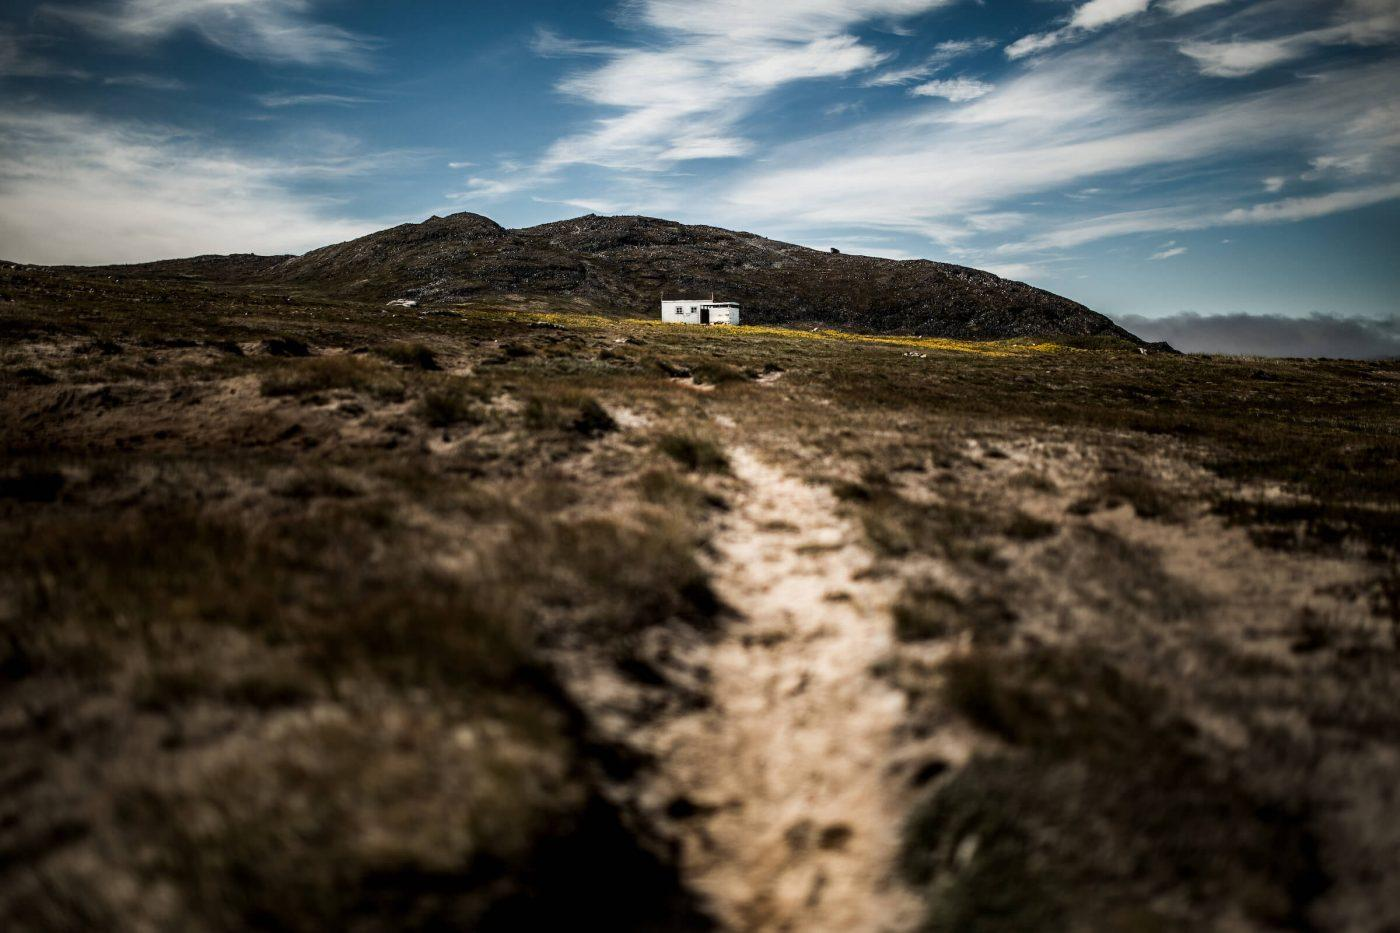 The path towards the Uunartoq hot springs in South Greenland. By Mads Pihl